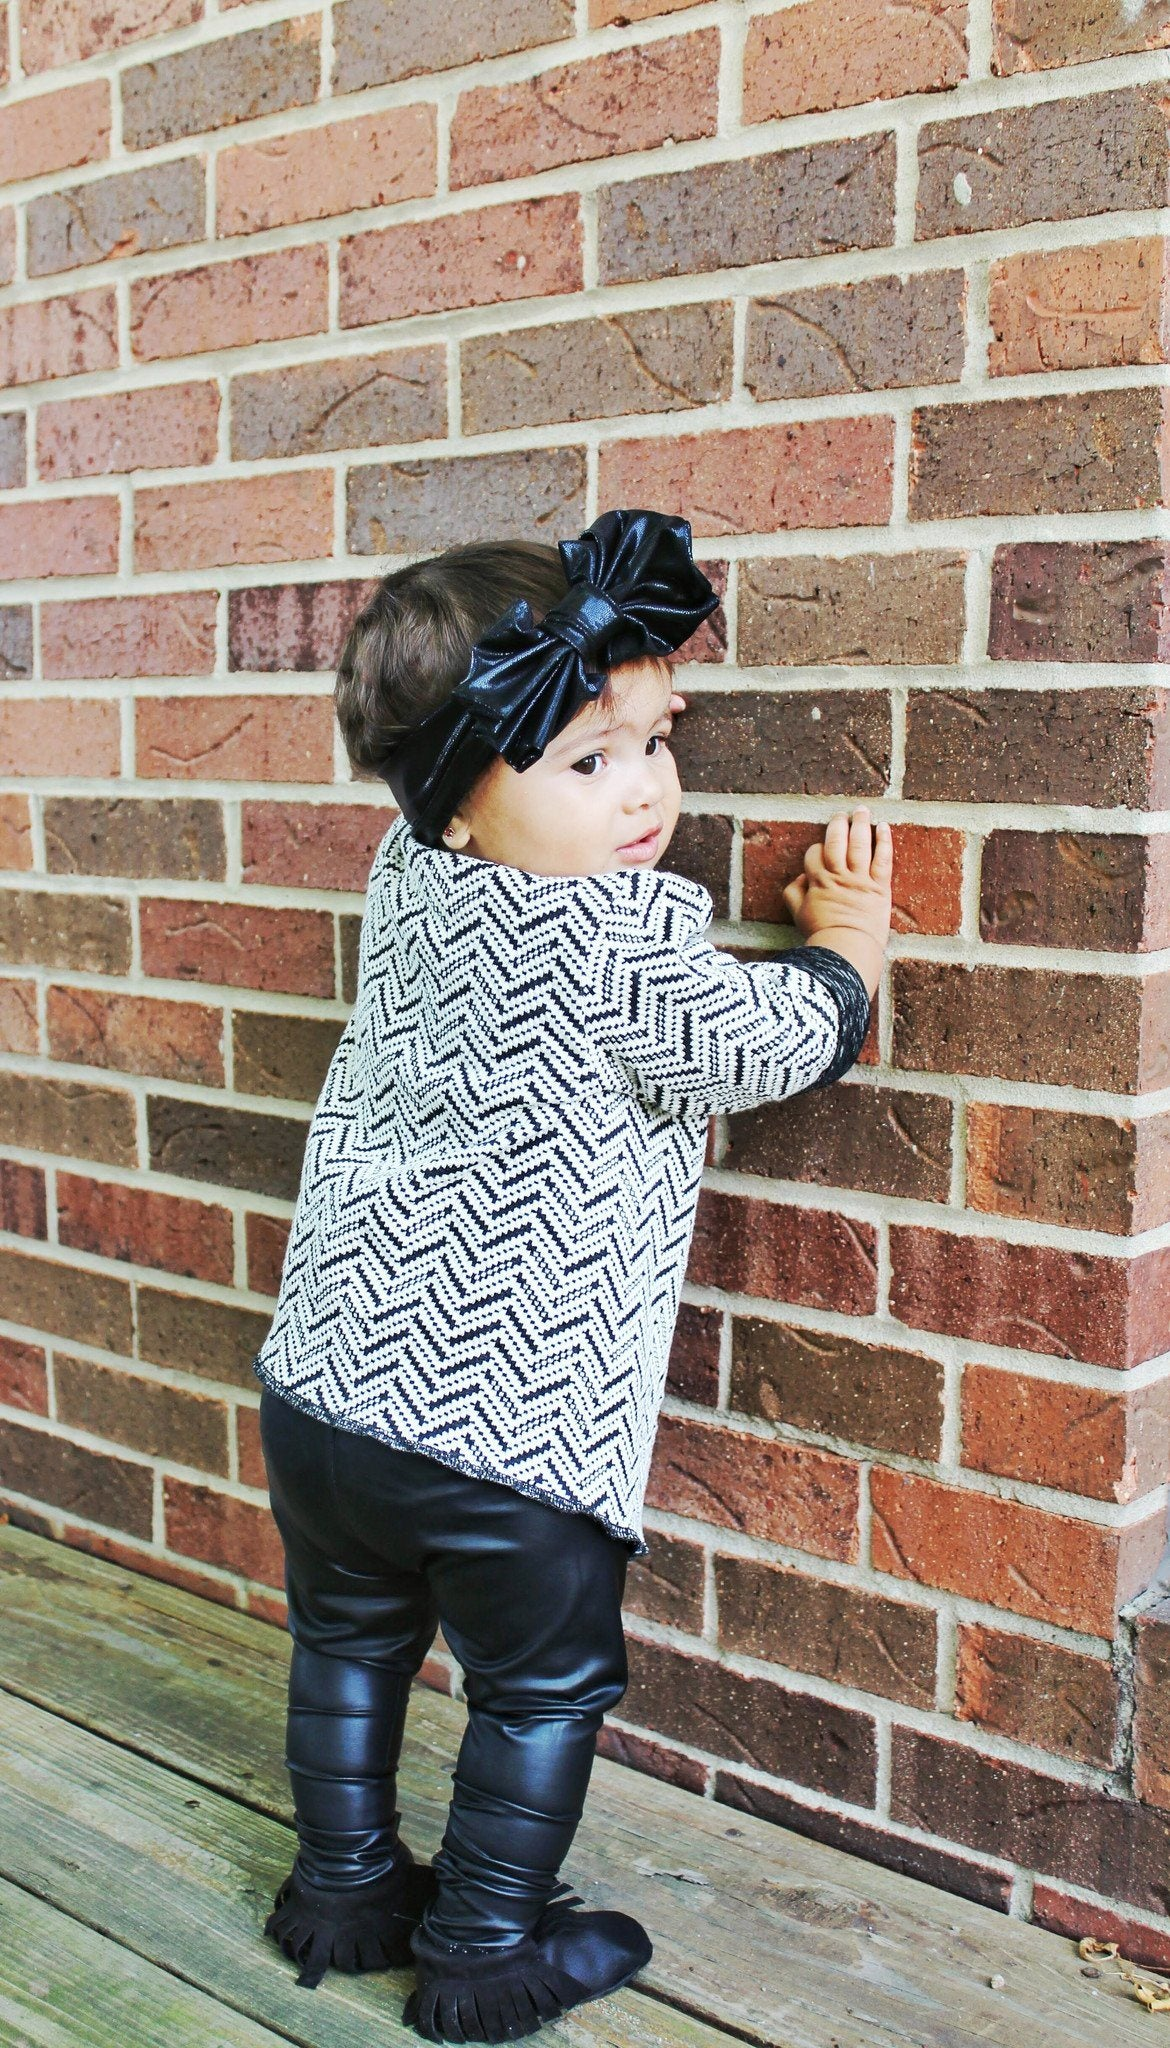 Cardigan Wrap - Cardigan Sweater Jacket For Toddlers